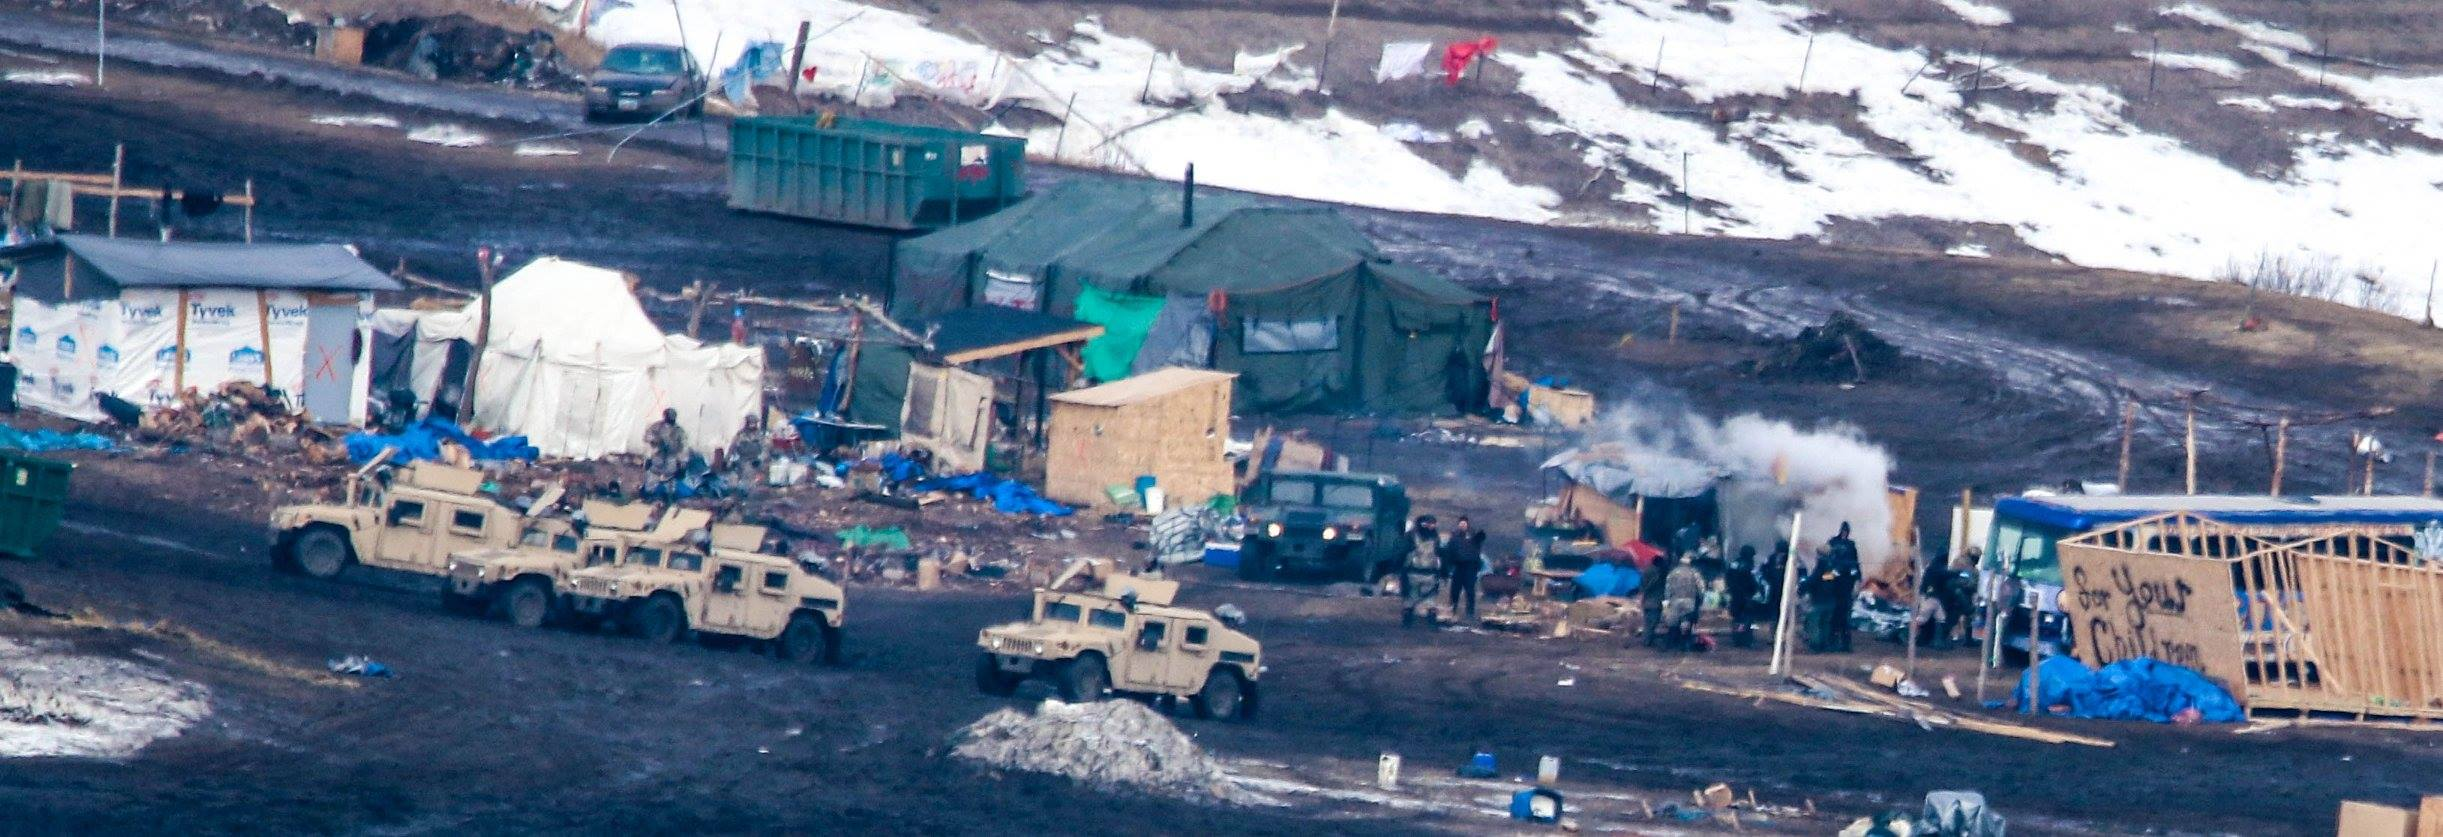 Evacuation Oceti Sakowin Camp, Law Enforcement Agents Extinguishing the Sacred Fire - February 23rd, 2017 - By MK